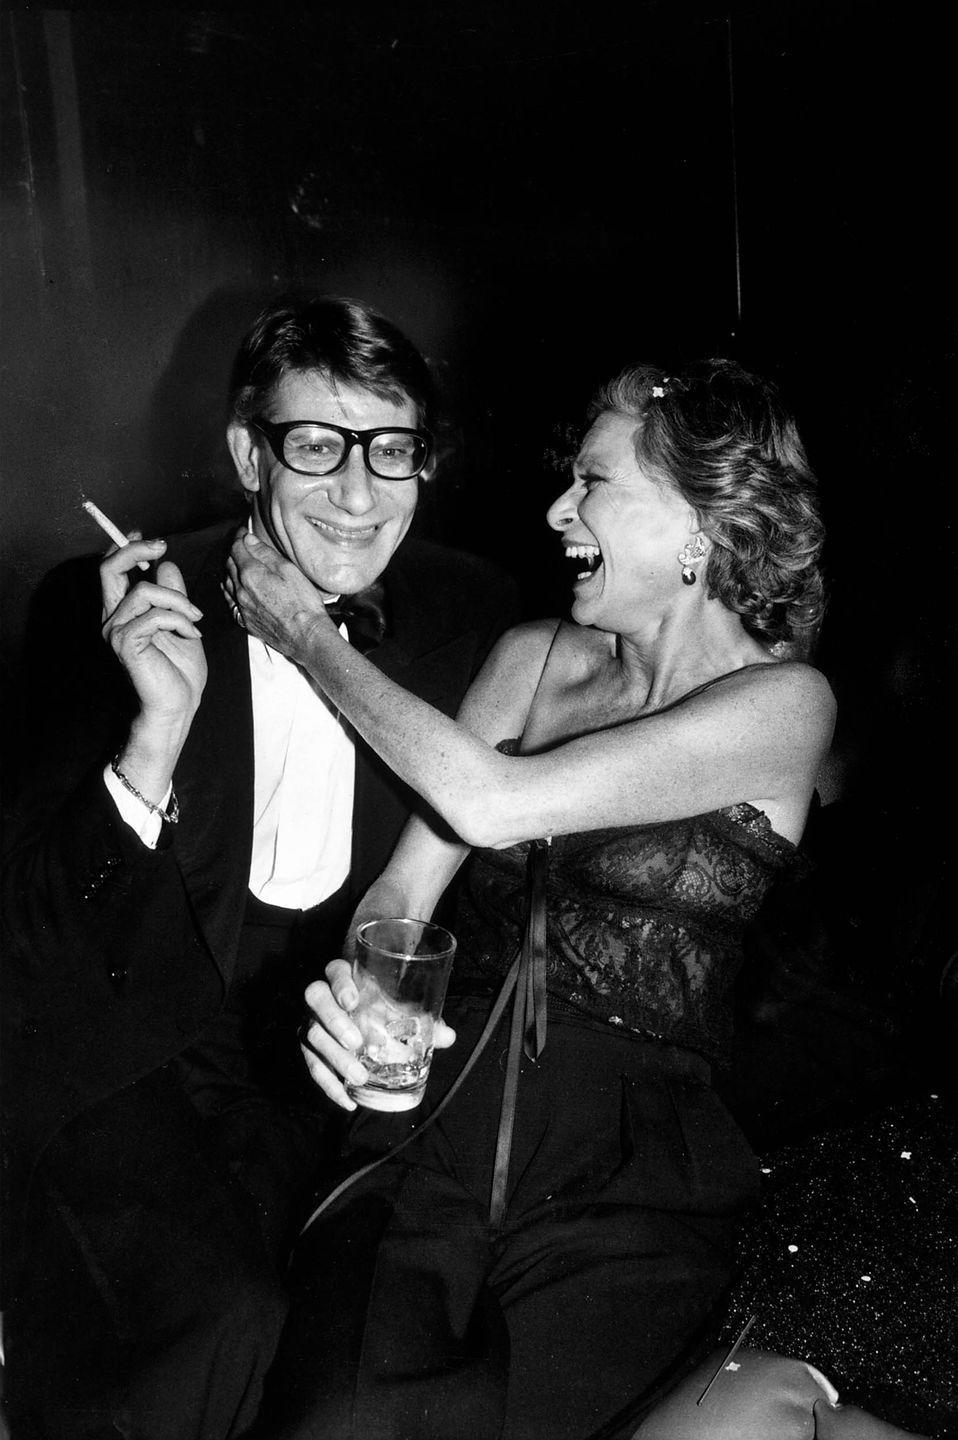 <p>Yves Saint Laurent with socialite Nan Kempner during a party for the launch of his new perfume called Opium, held aboard the sailboat Peking at the South Street Seaport Museum in New York in 1978.</p>